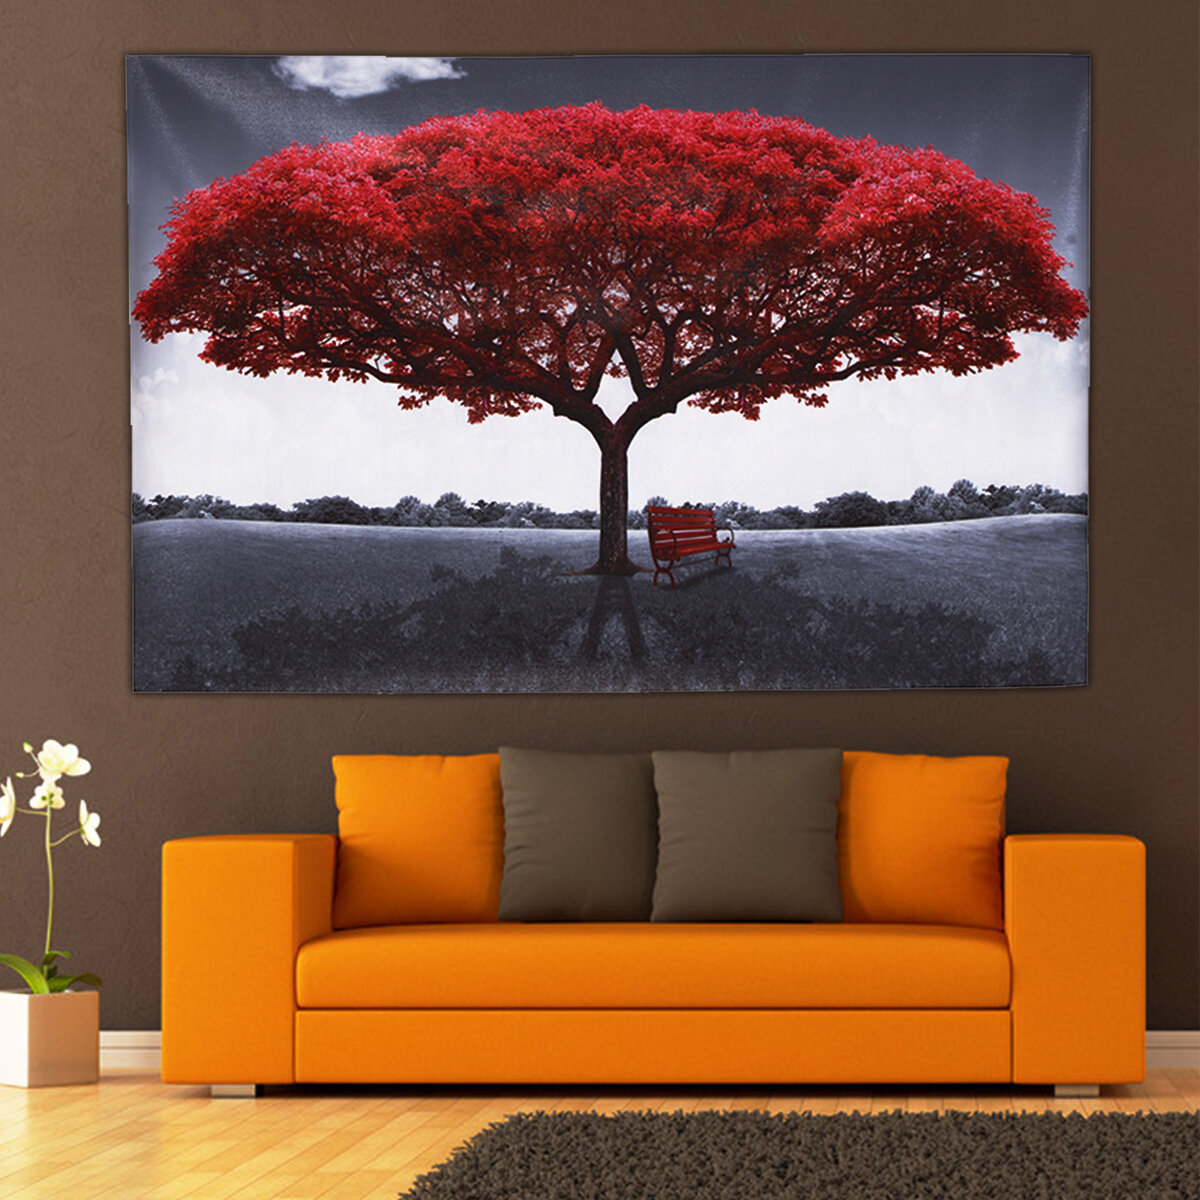 Large Red Tree Canvas Modern Home Wall Decor Art Paintings Picture Print No Frame Decorations